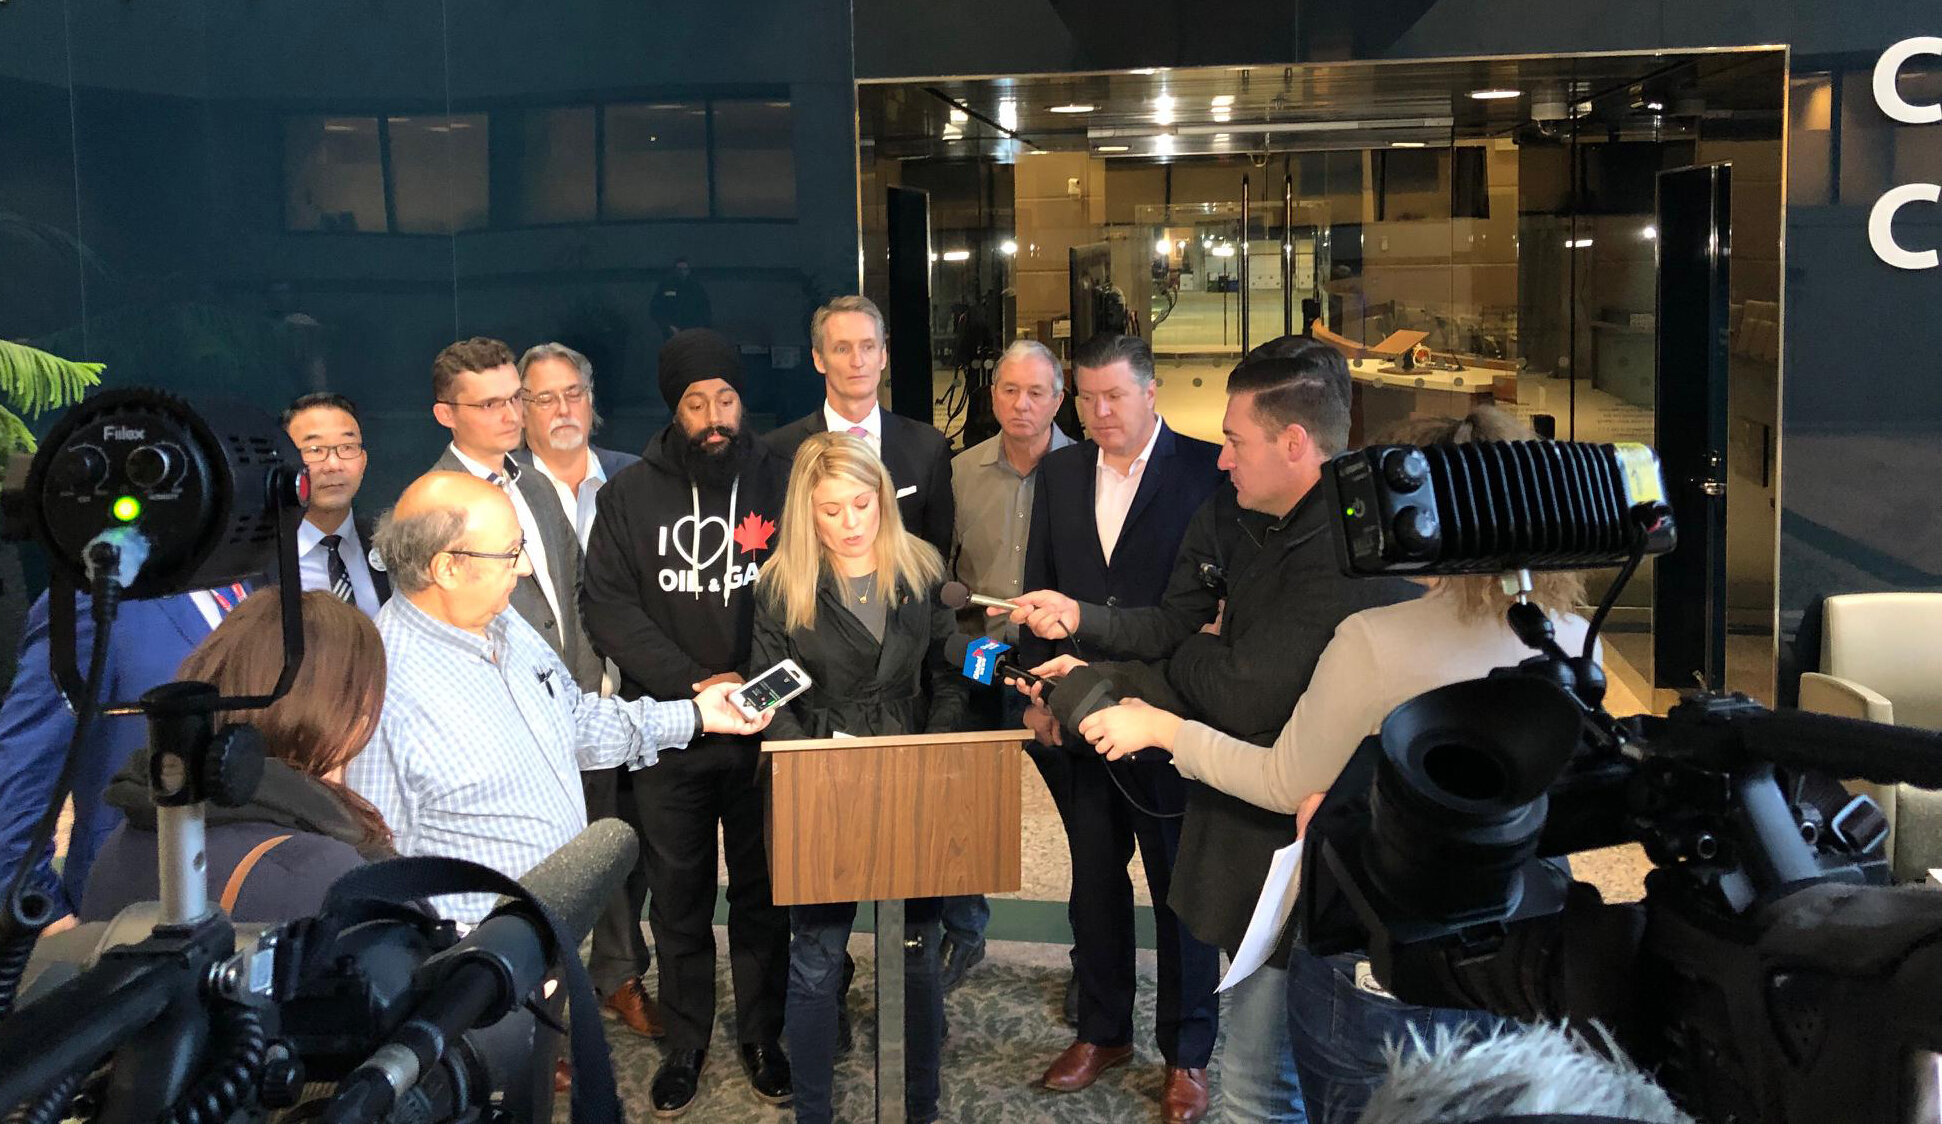 Conservatives were accused of not responding to the City of Calgary's issues survey. Unfortunately, it was never sent to us (my team double checked our mail, as did other candidates). Today the Calgary Conservative candidates held a news conference to release our answers. You can find them here:  https://cpcrempel.ca/yyc-matters-survey